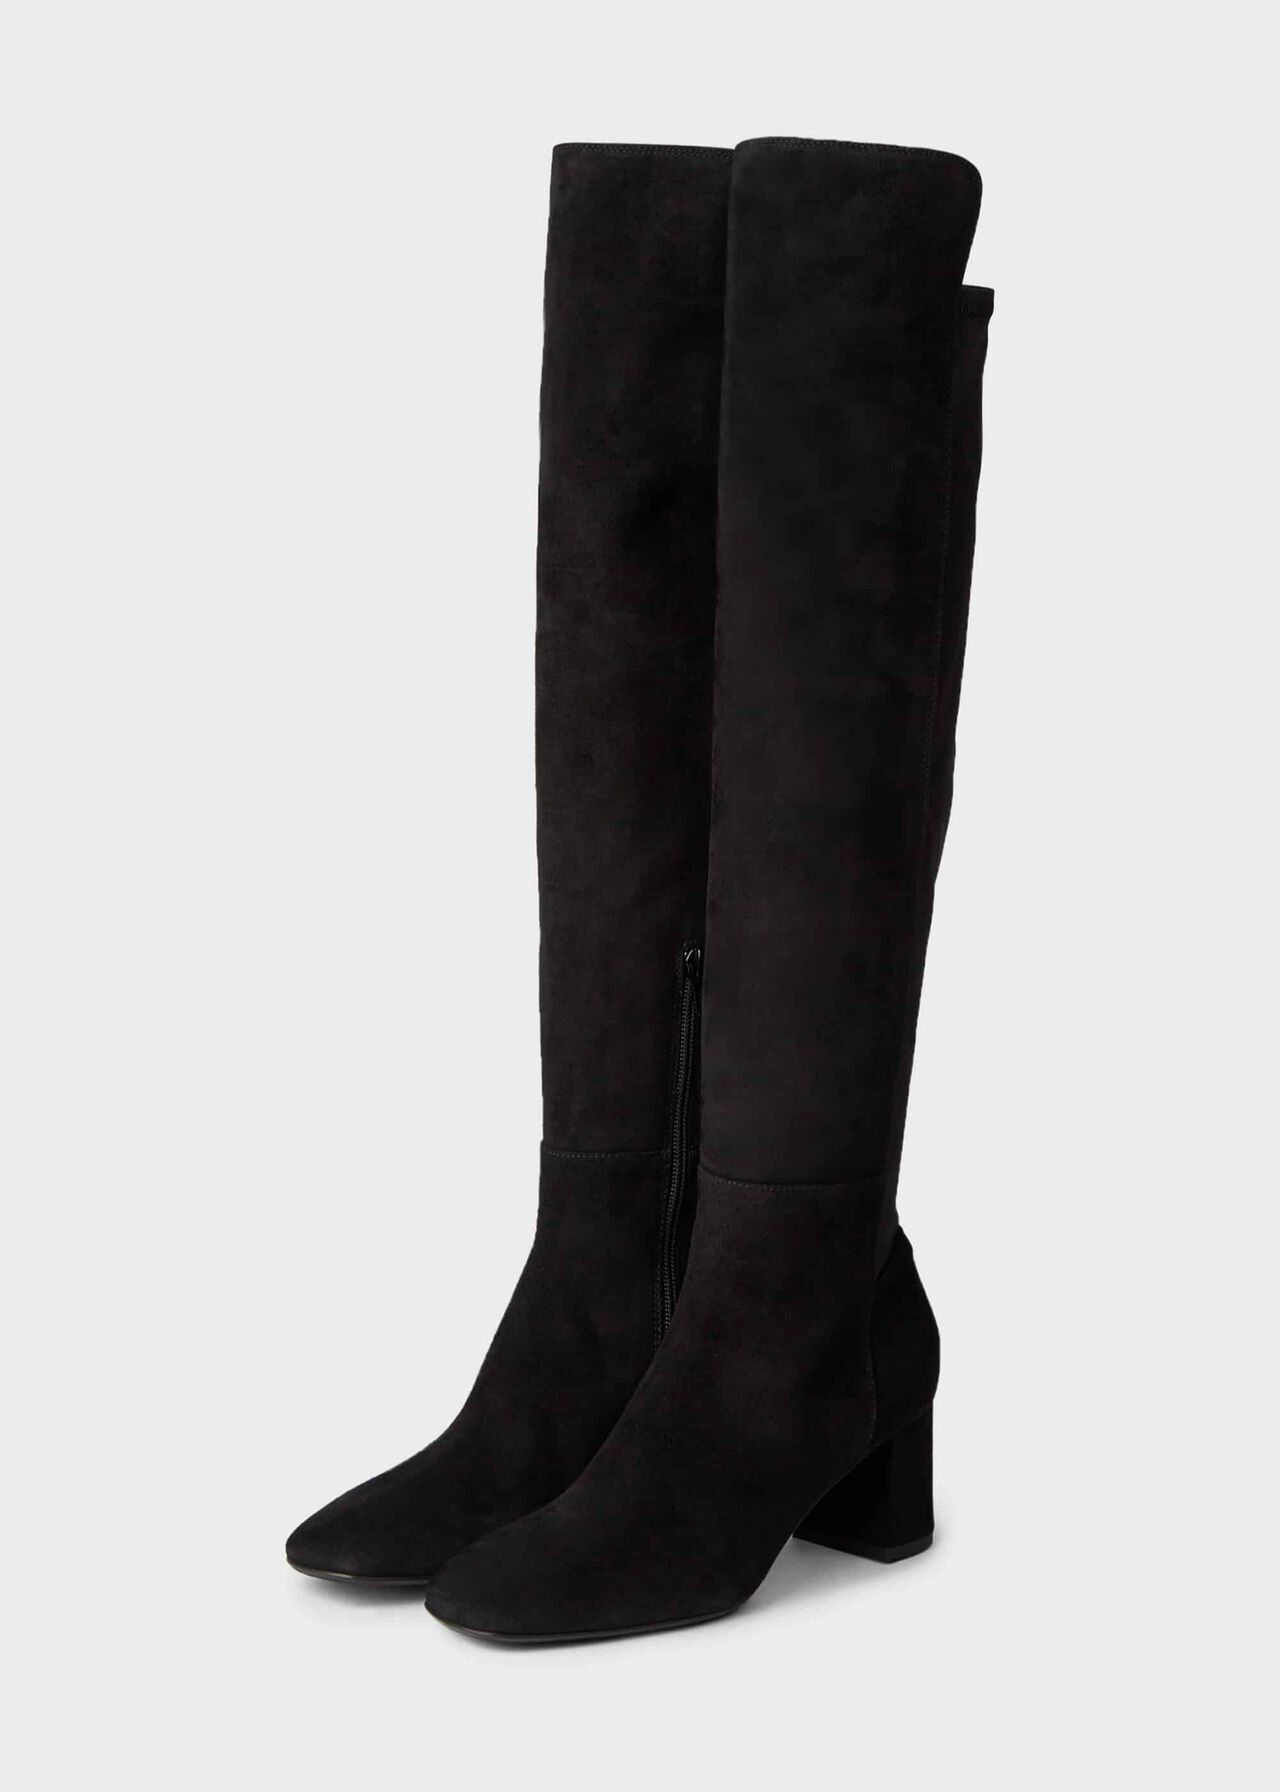 Imogen Over The Knee Boot Black